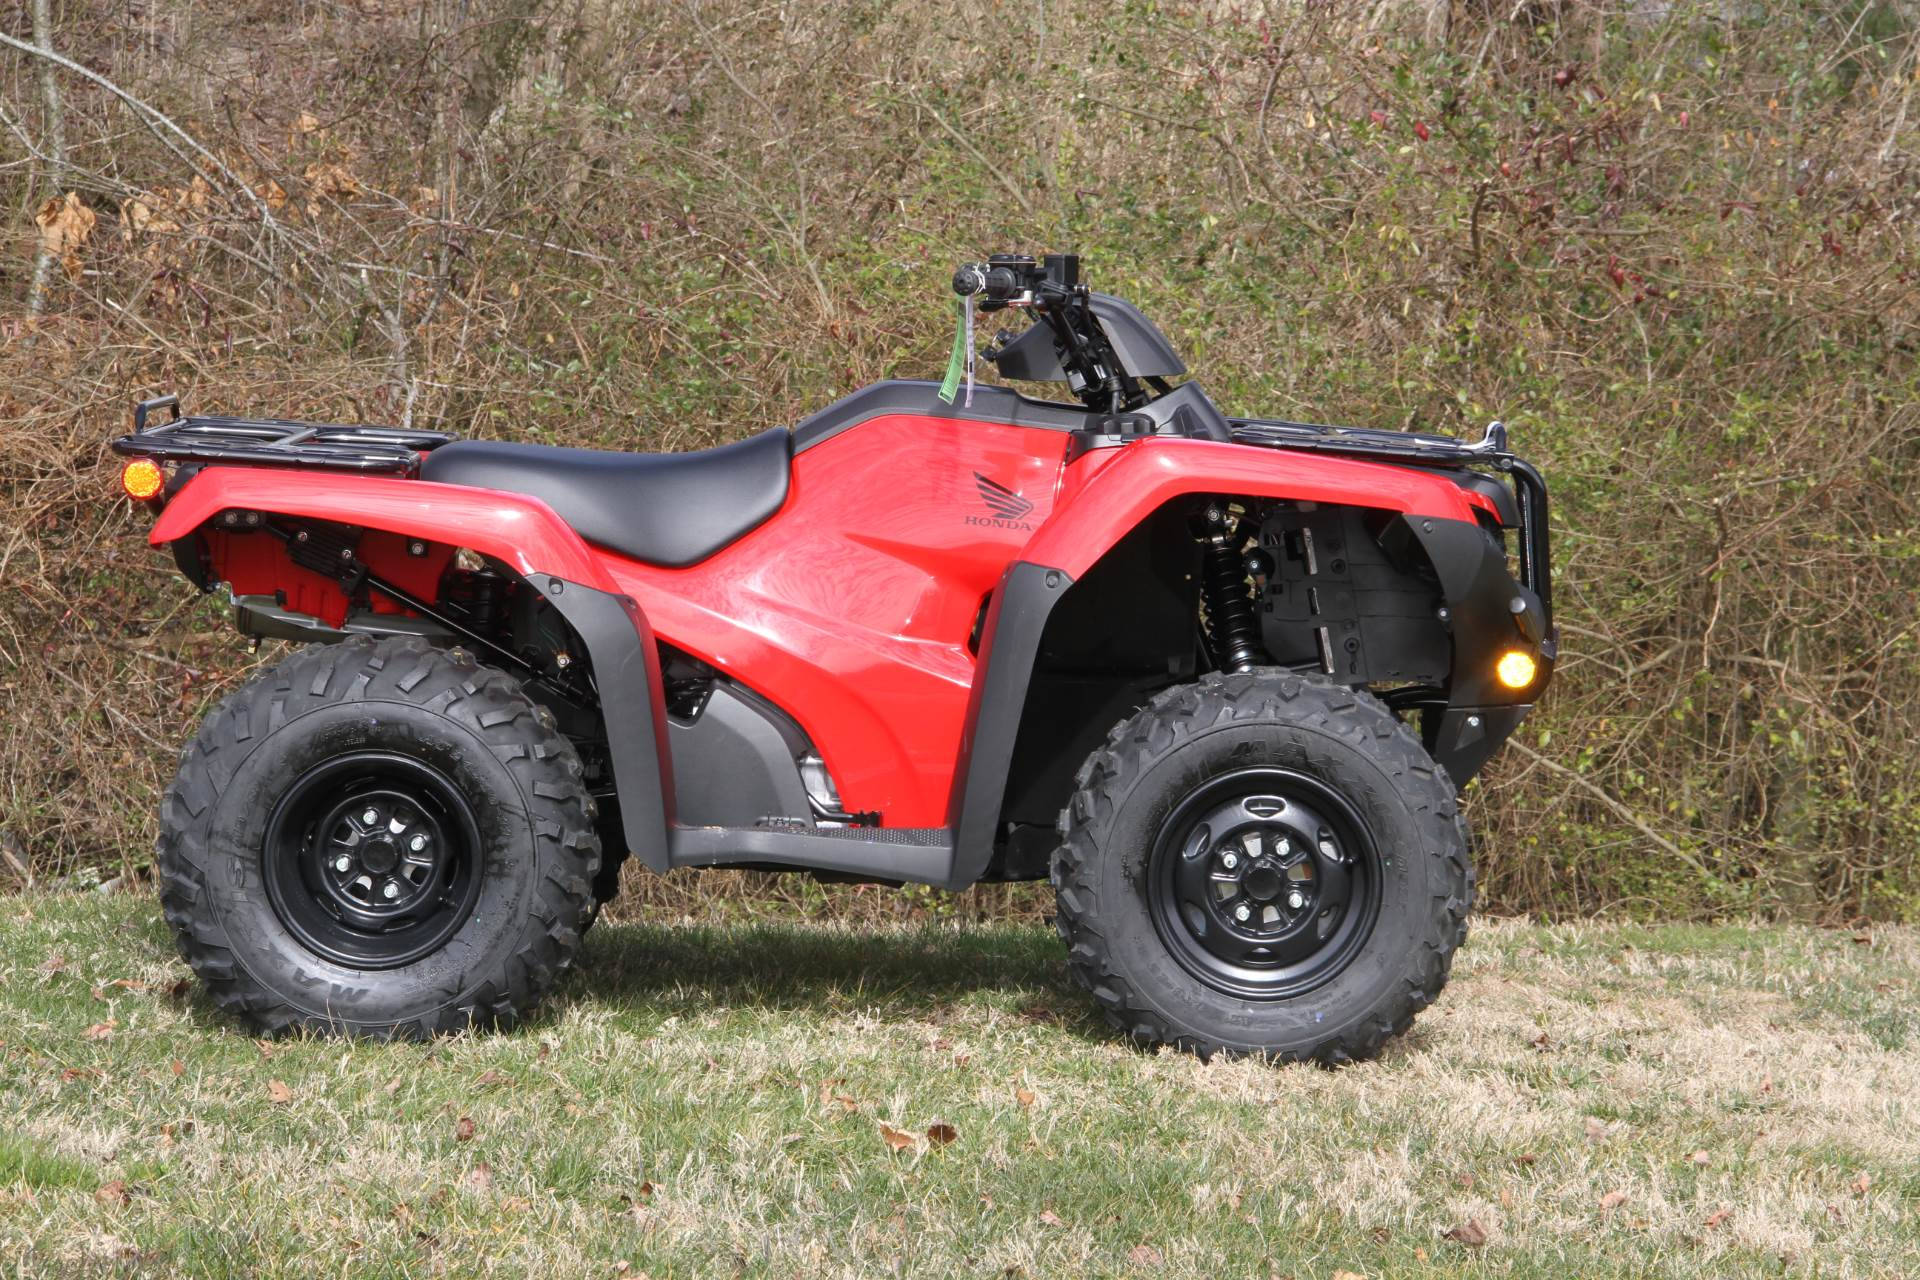 2020 Honda FourTrax Rancher 4x4 in Hendersonville, North Carolina - Photo 7